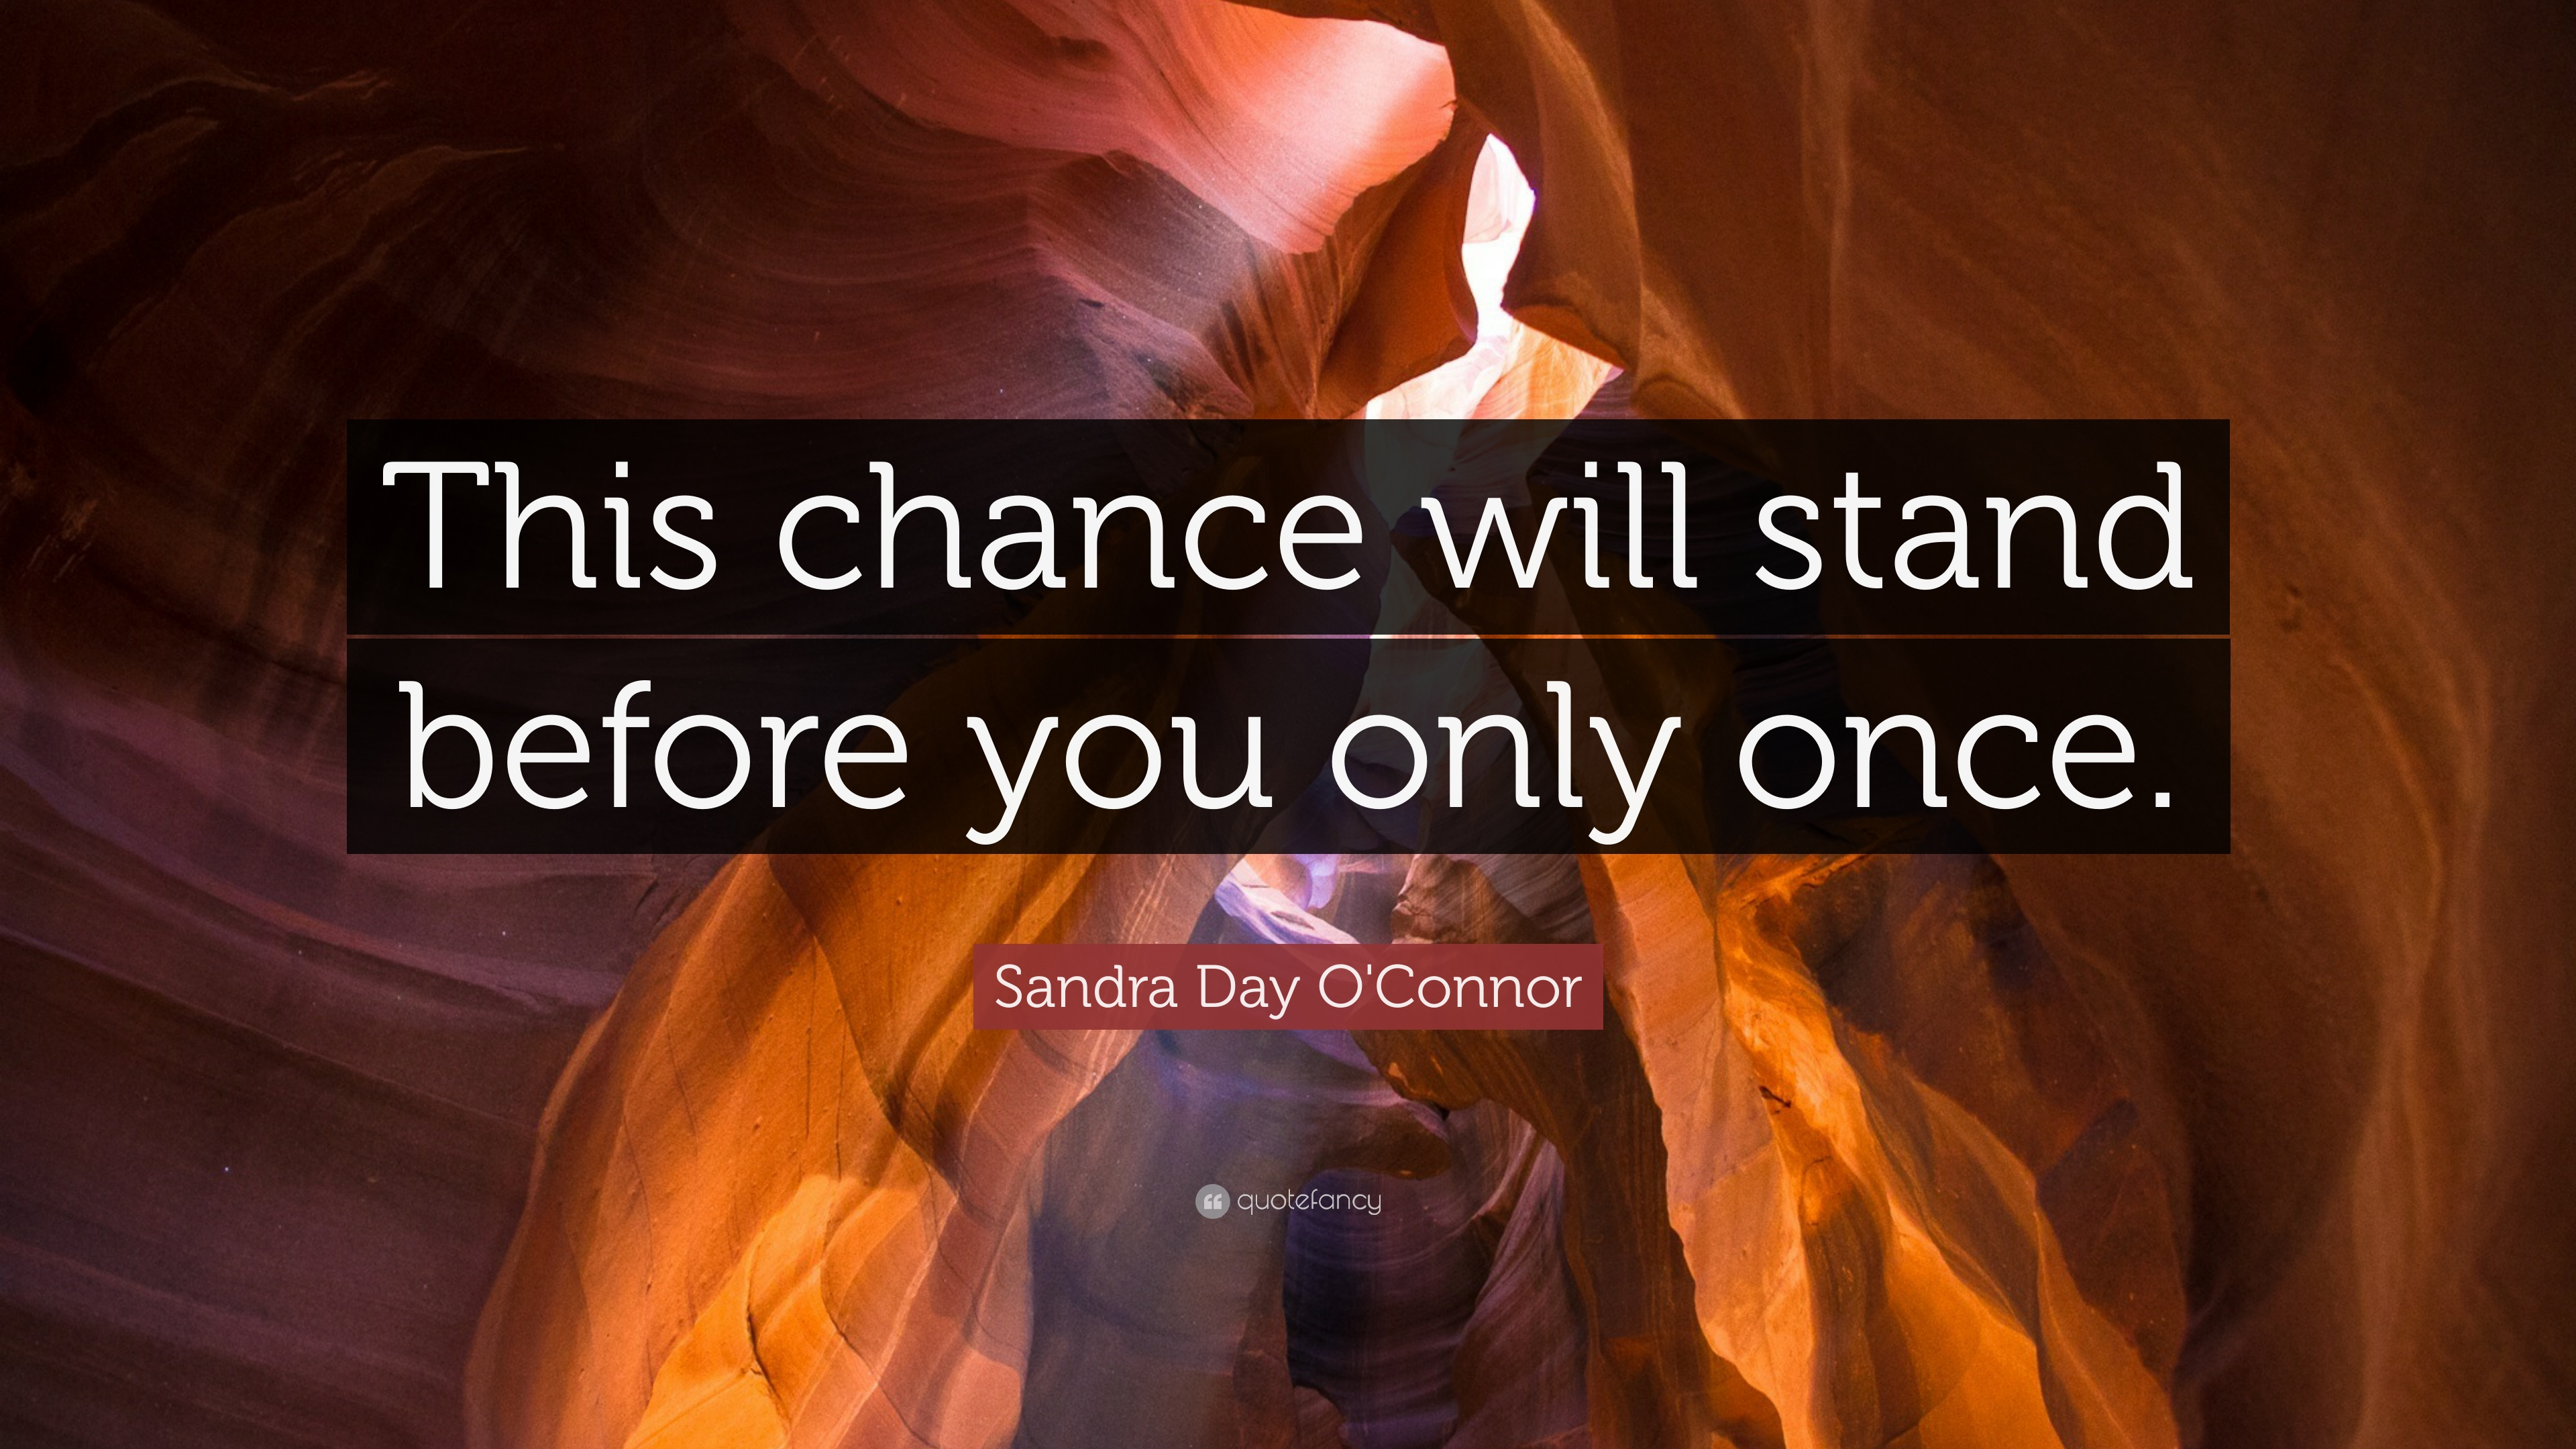 Sandra Day O Connor Quotes Sandra Day O'connor Quotes 81 Wallpapers  Quotefancy